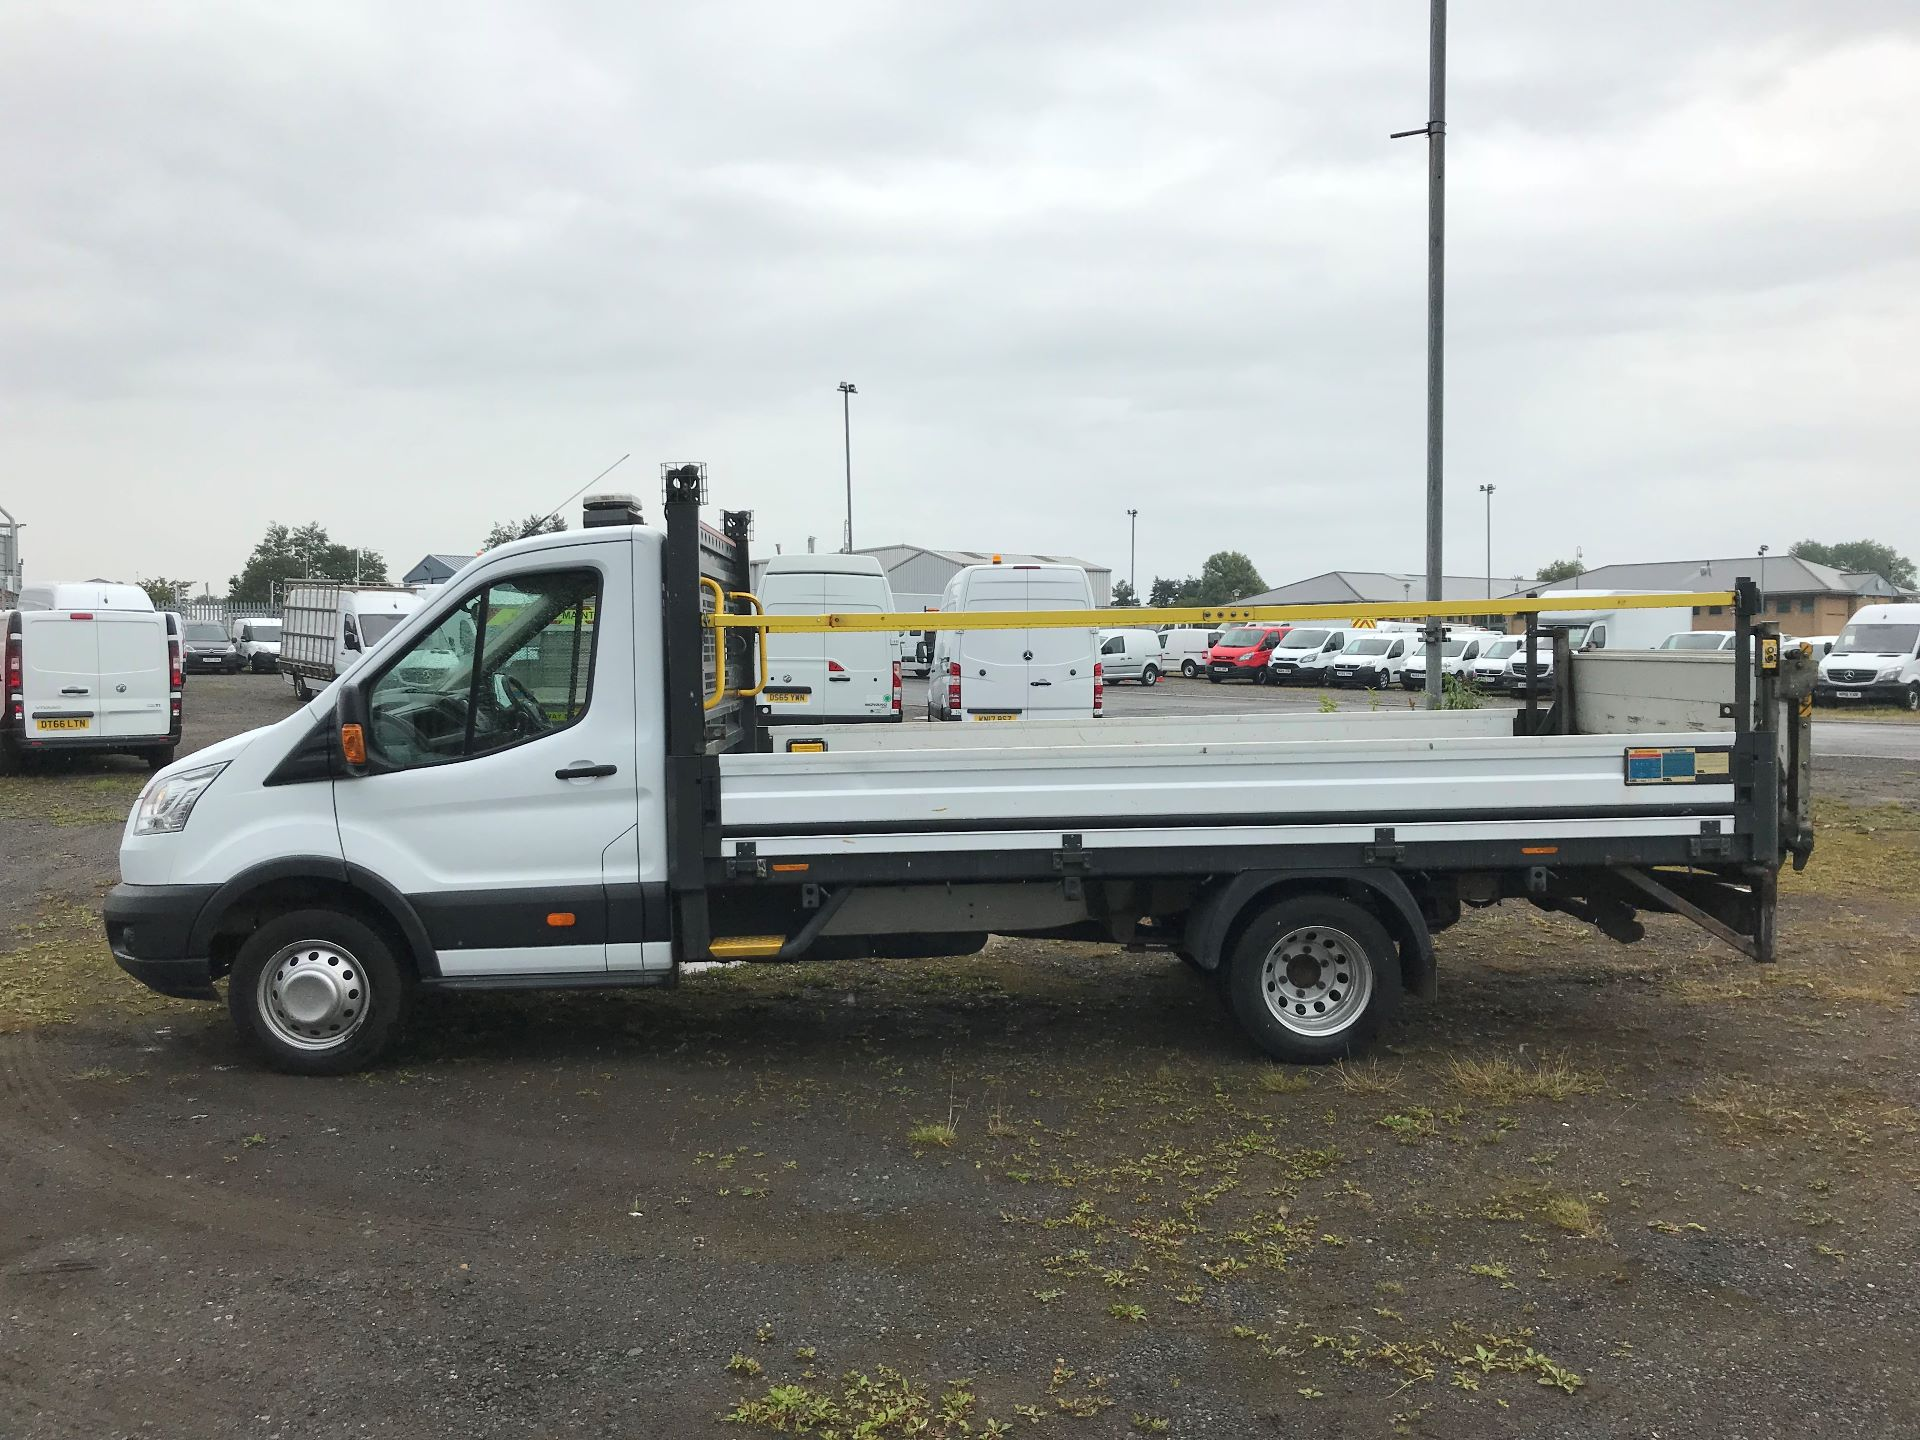 2016 Ford Transit 2.2 Tdci 125Ps Heavy Duty Chassis Cab *VALUE RANGE VEHICLE CONDITION REFLECTED IN PRICE*  (YS66SOE) Image 4